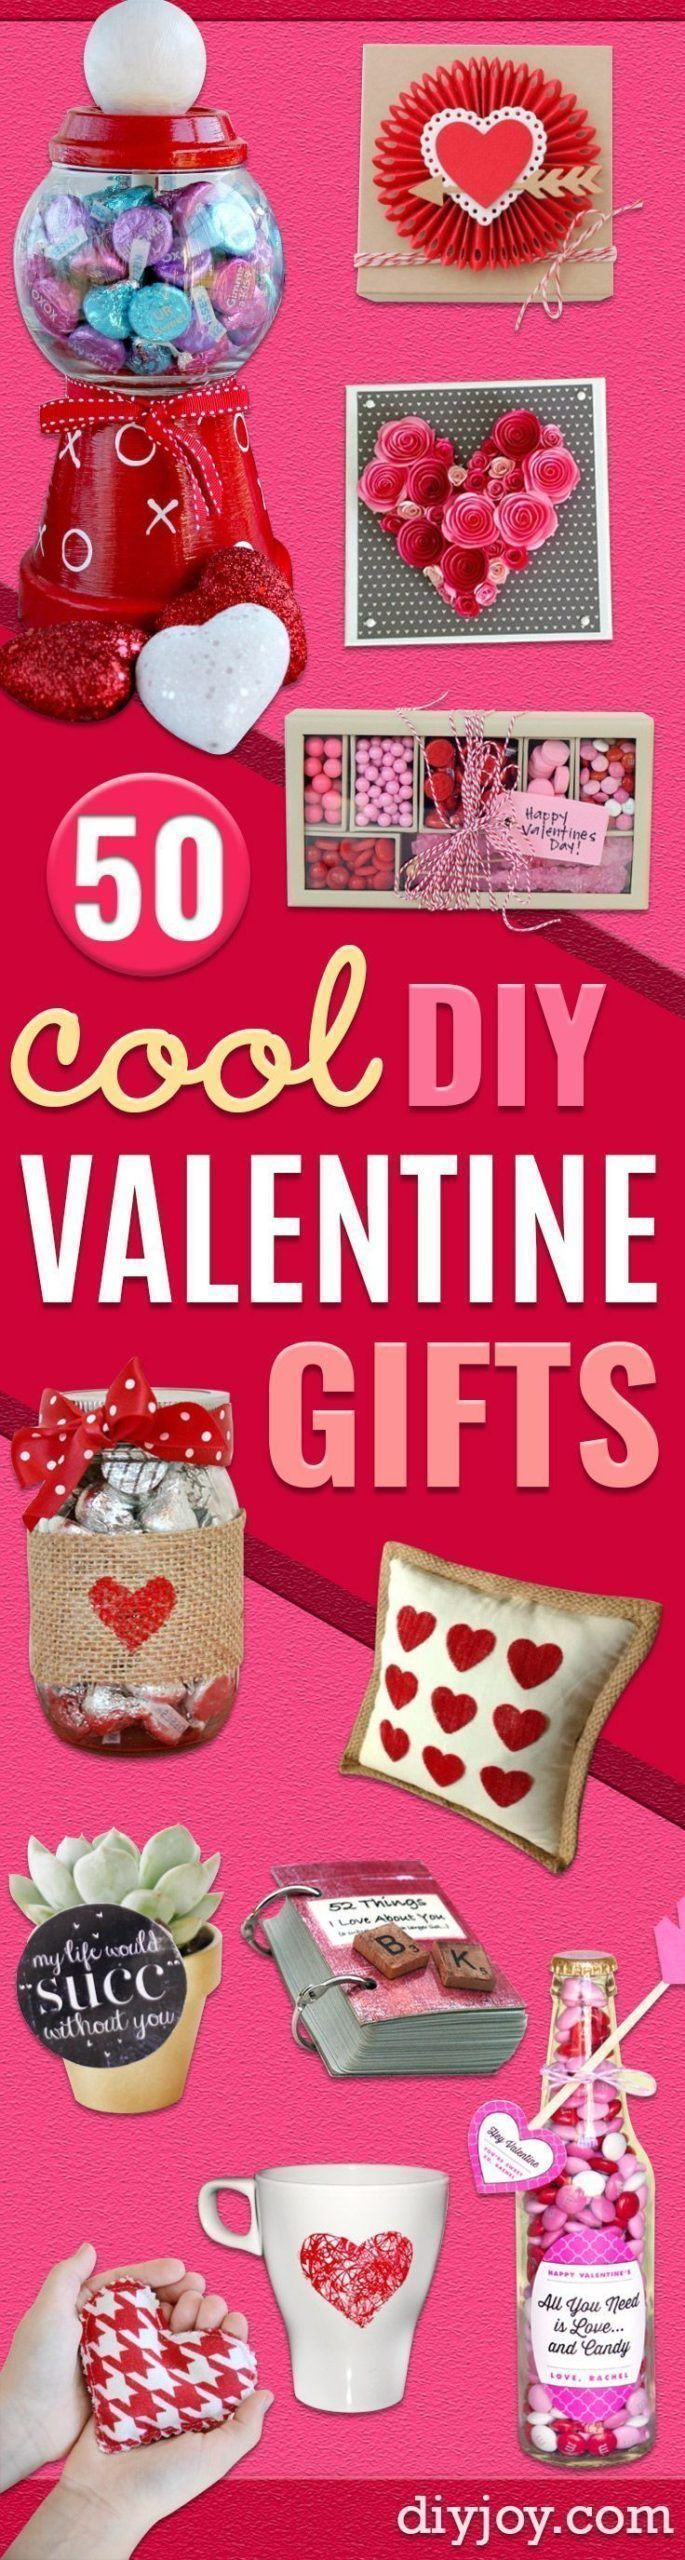 #cool #Day #DIY #easy #Gifts #Valentines 50 Cool and Easy DIY Valentine's Day Gi #craftprojects